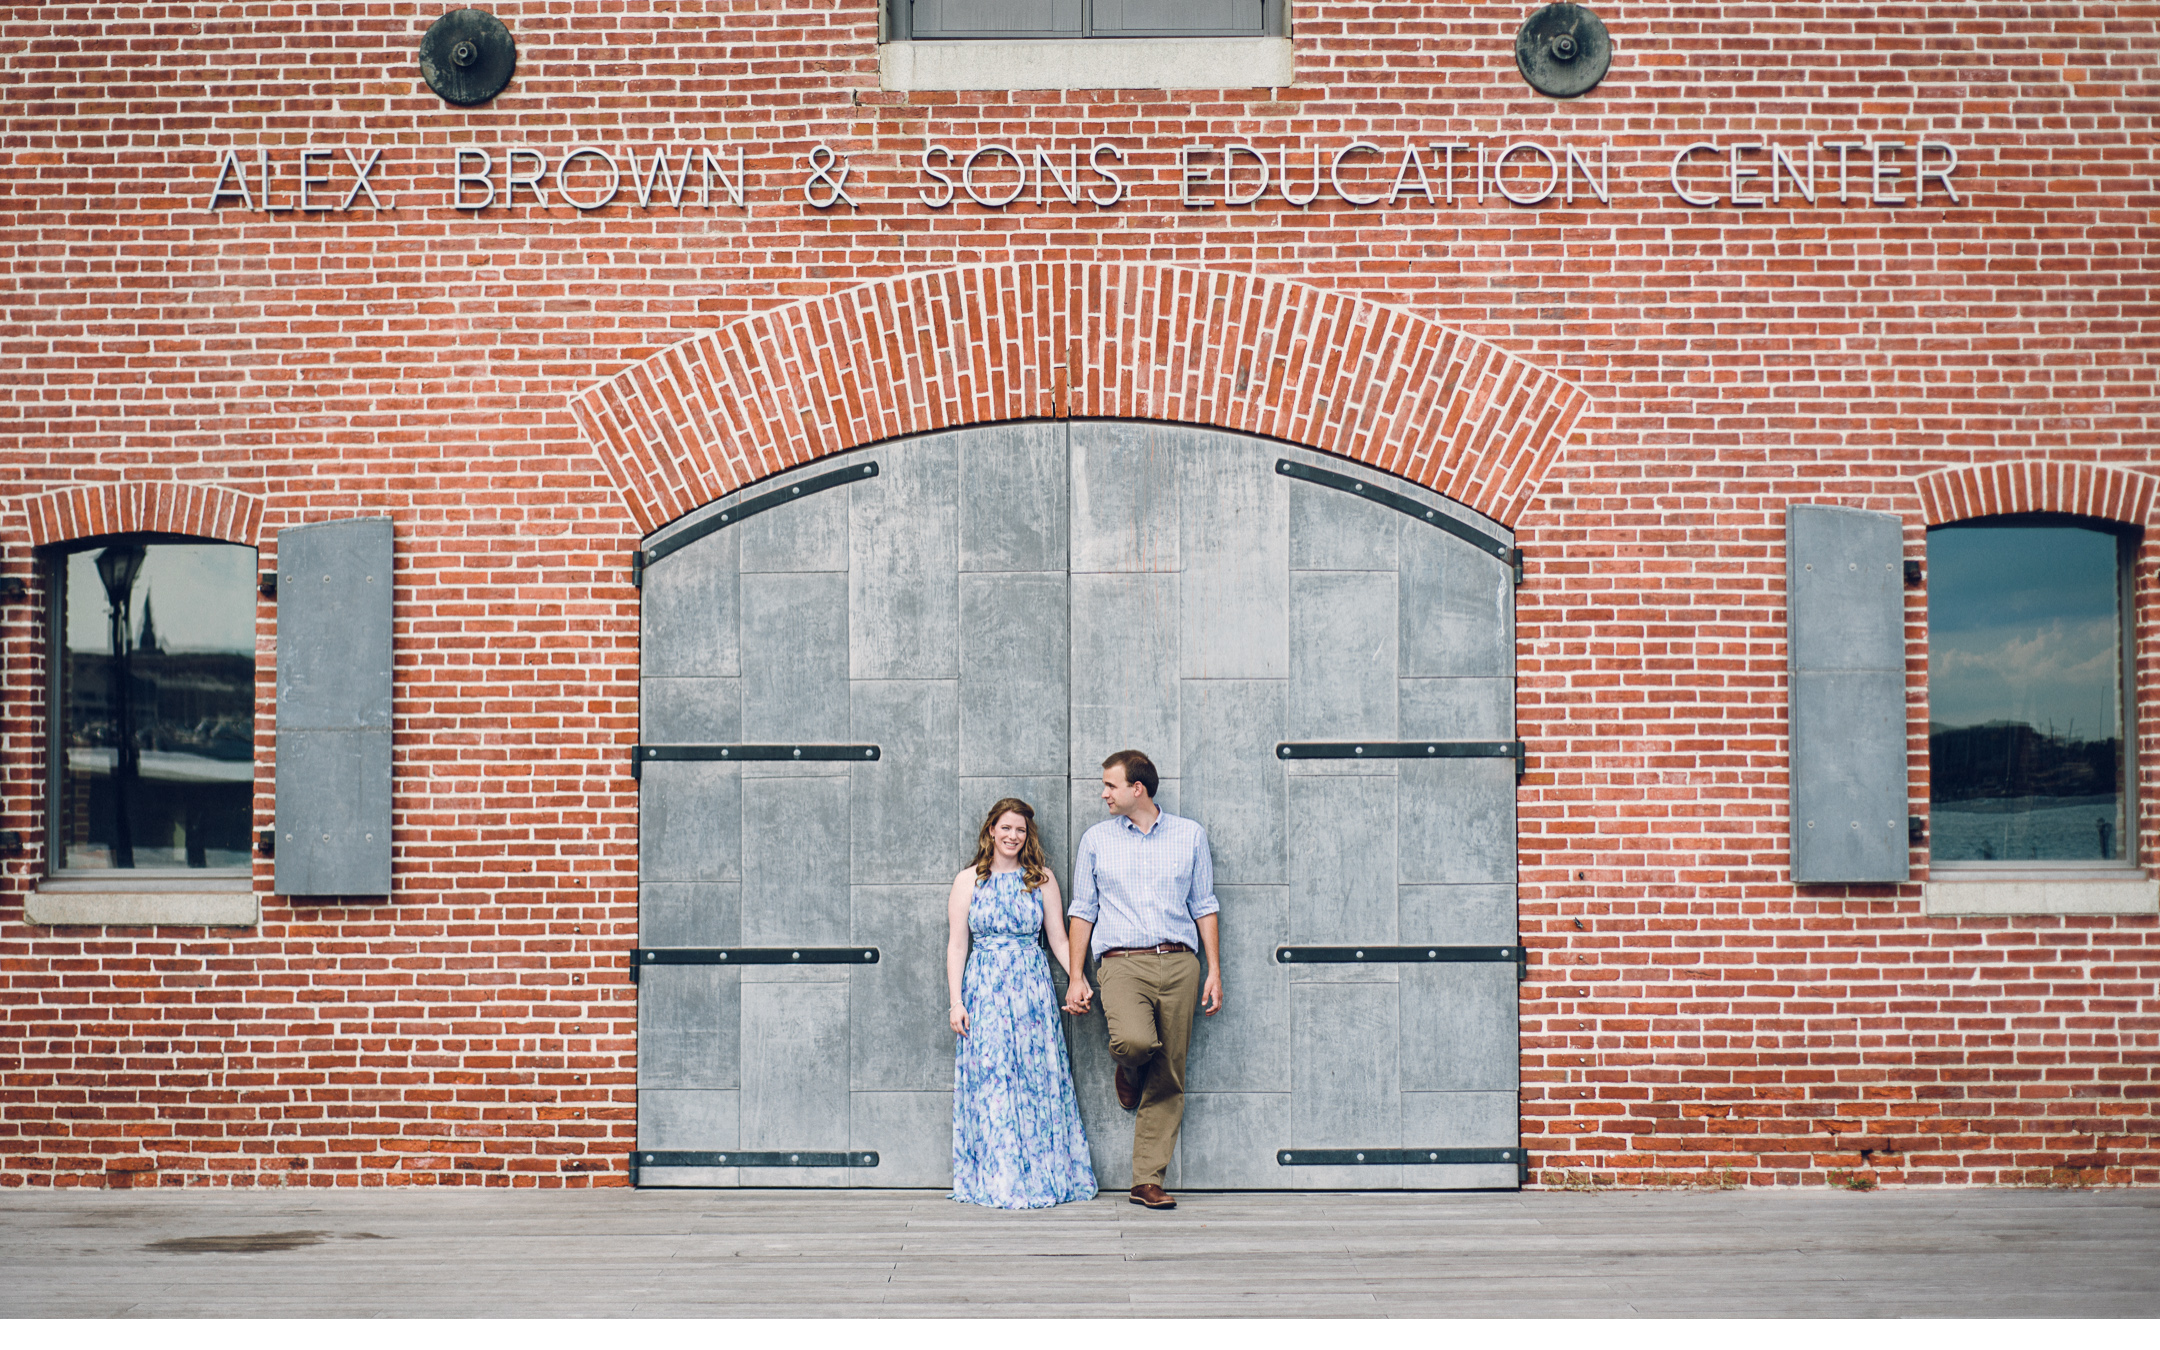 Couple Against Brick Building